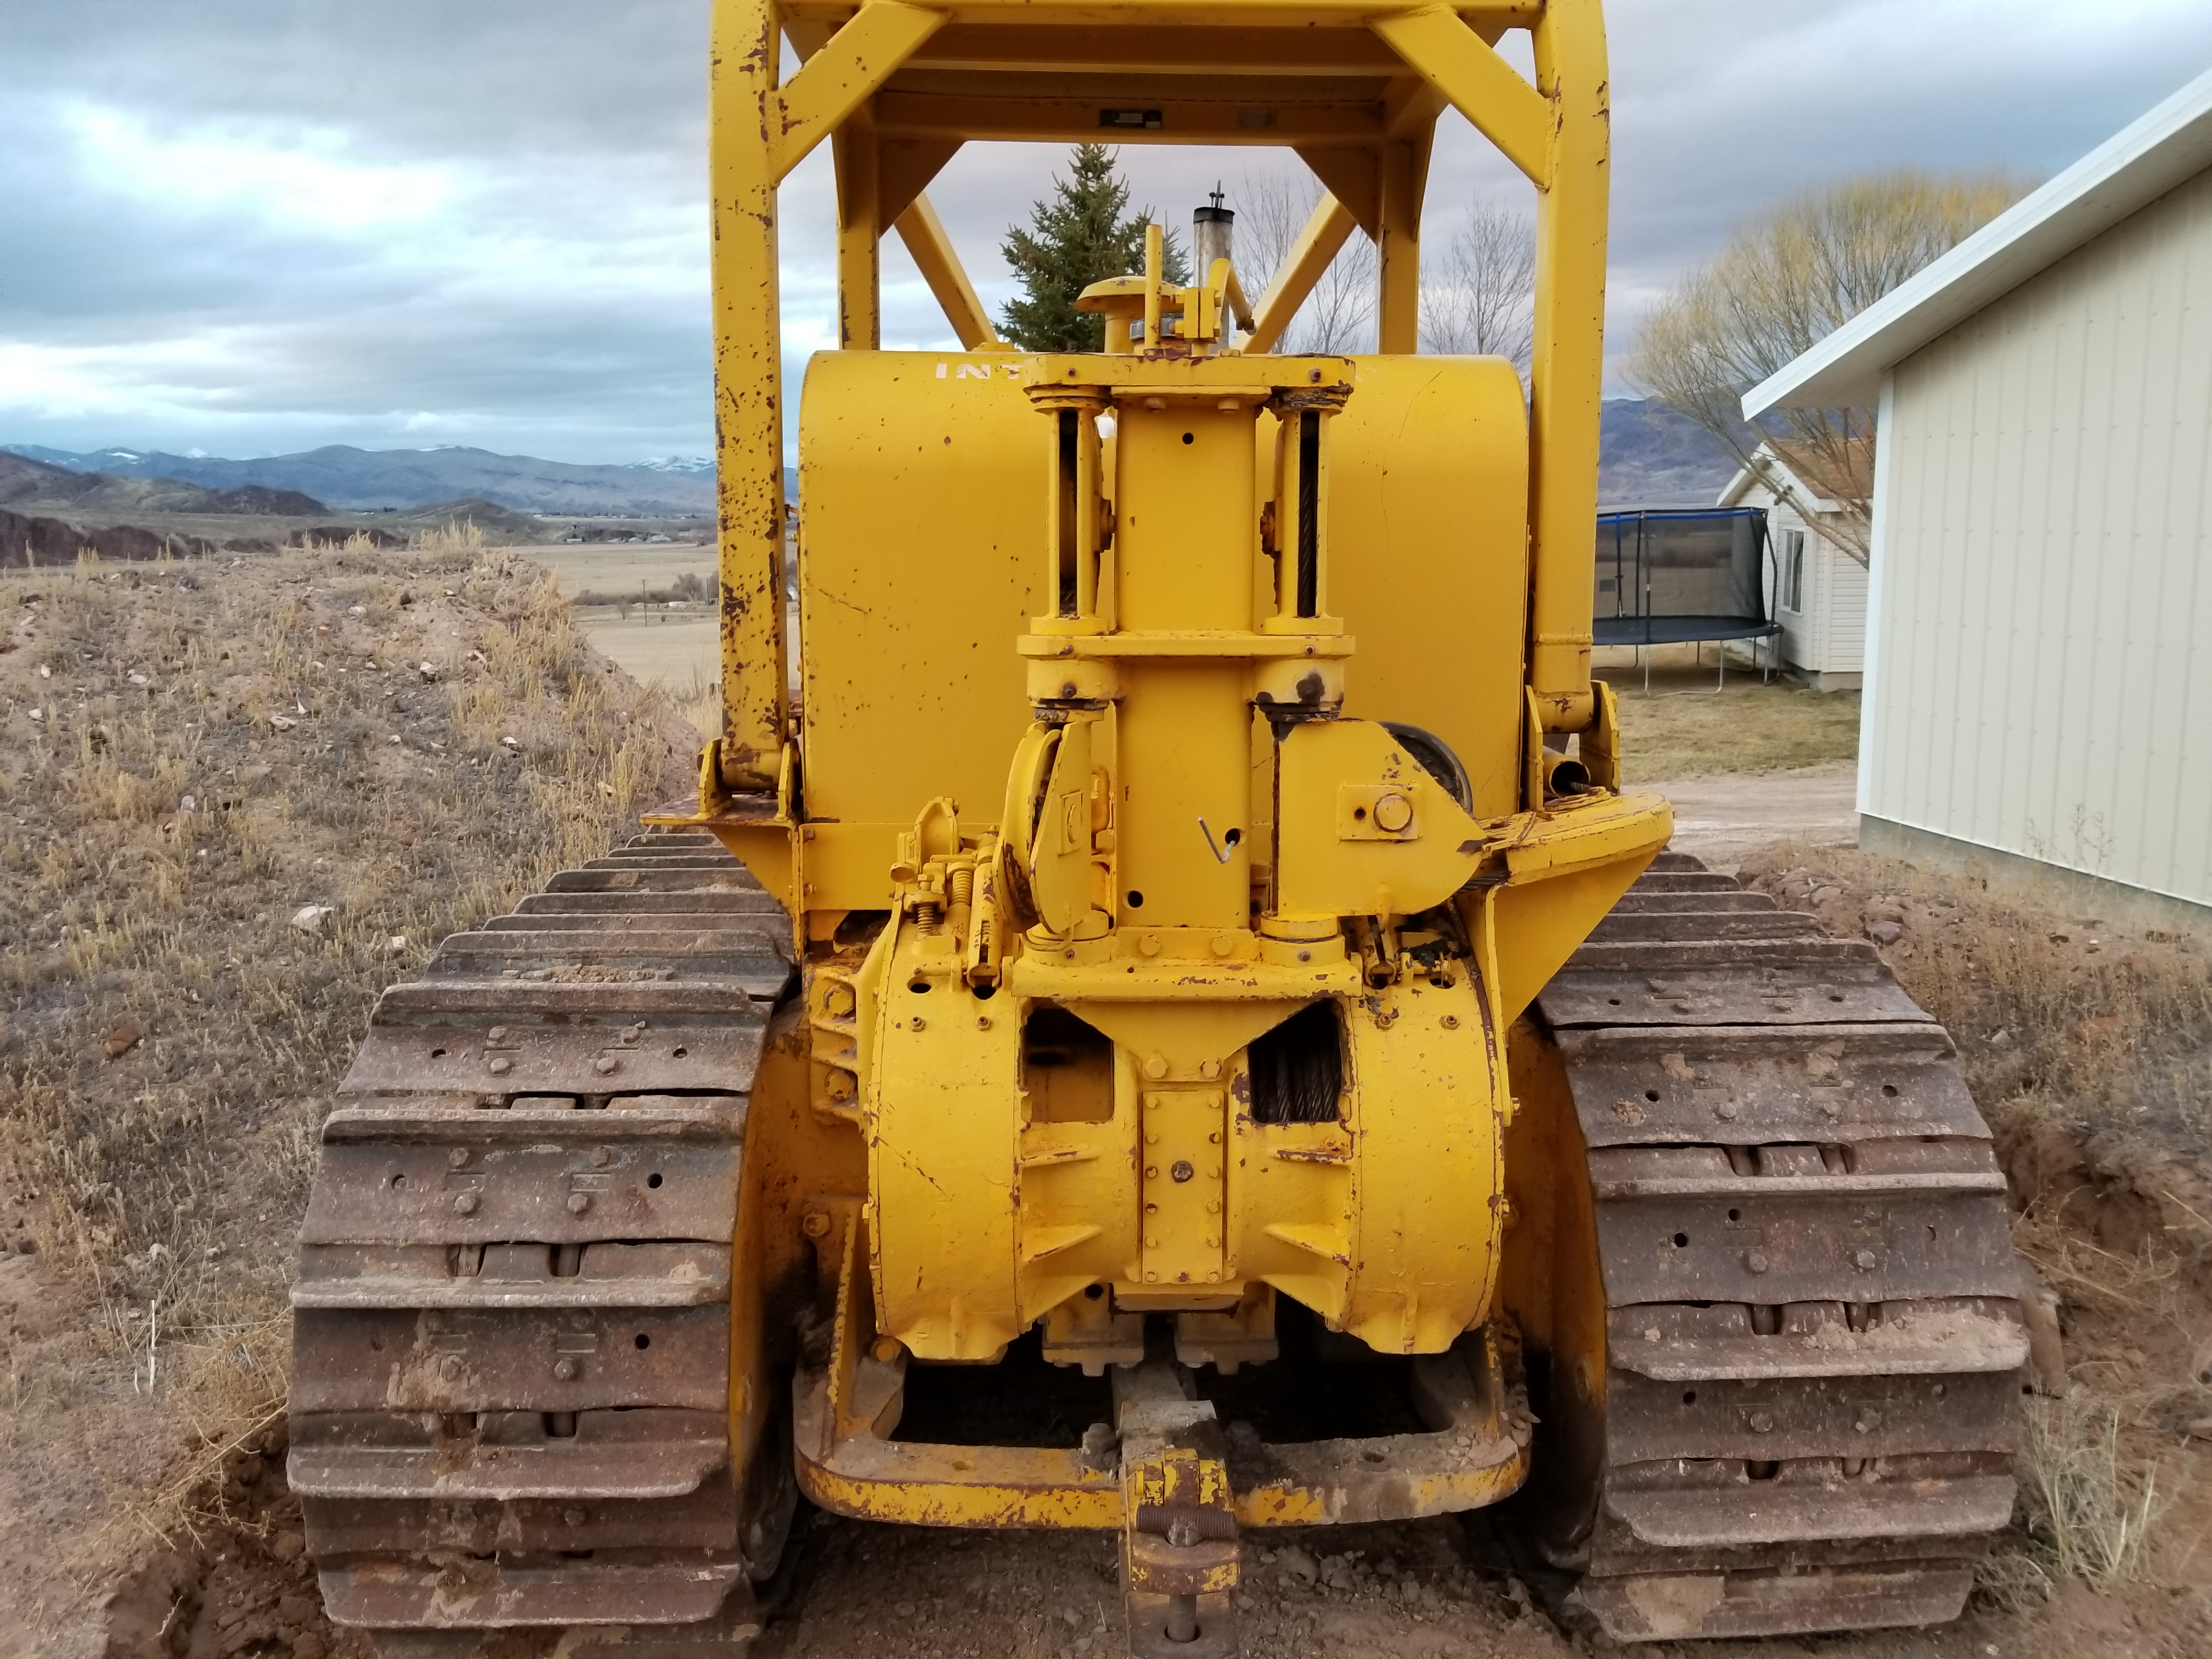 250 series TD25 cable dozer - IH Construction Equipment